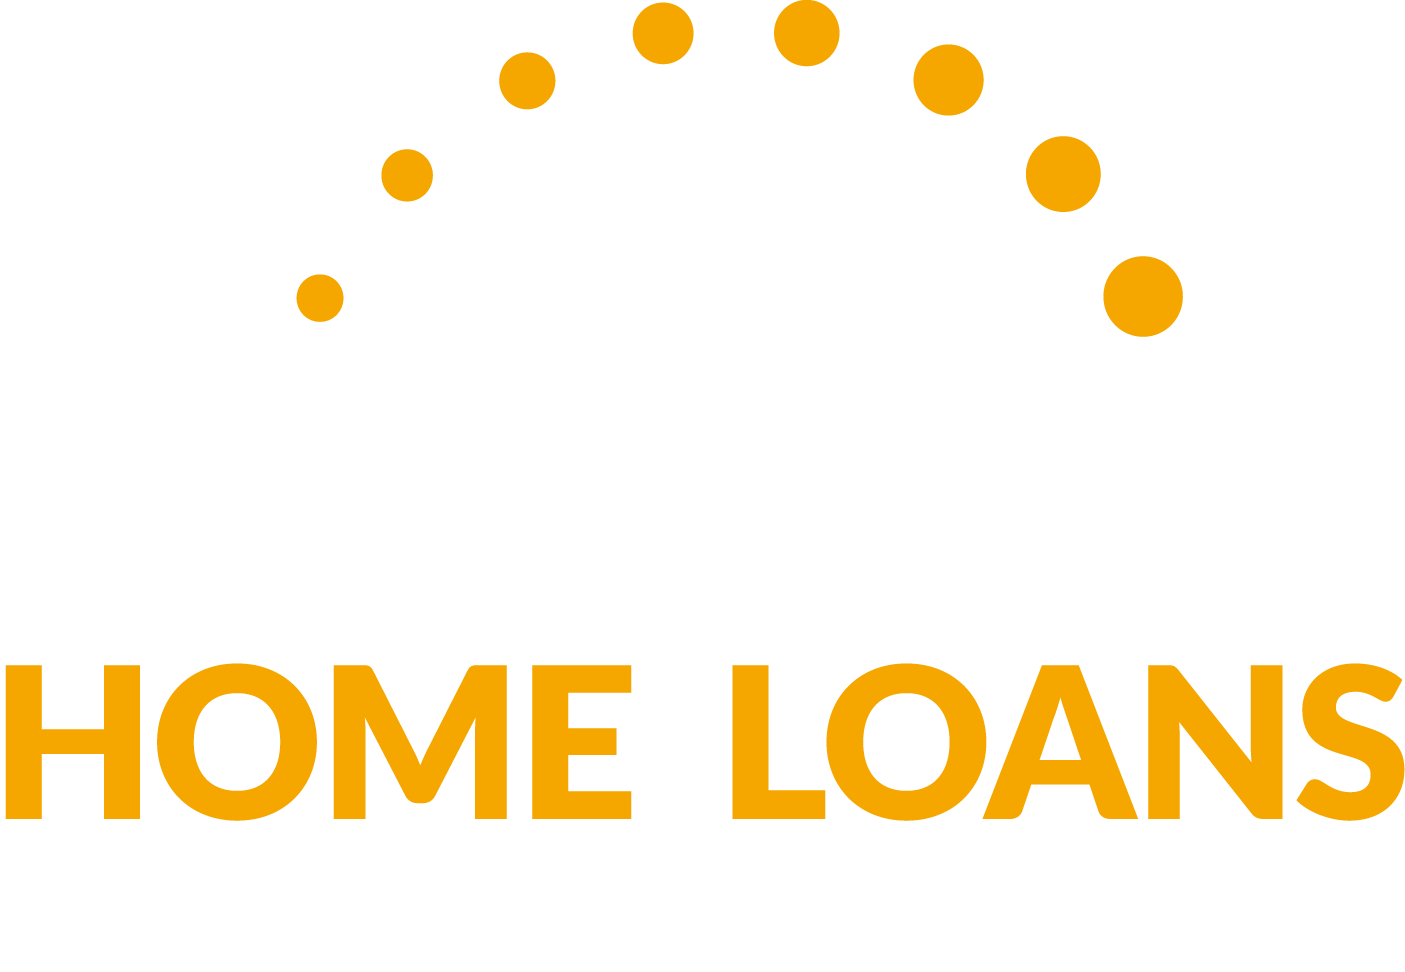 Future Home Loans - Fossil fuel free home loans